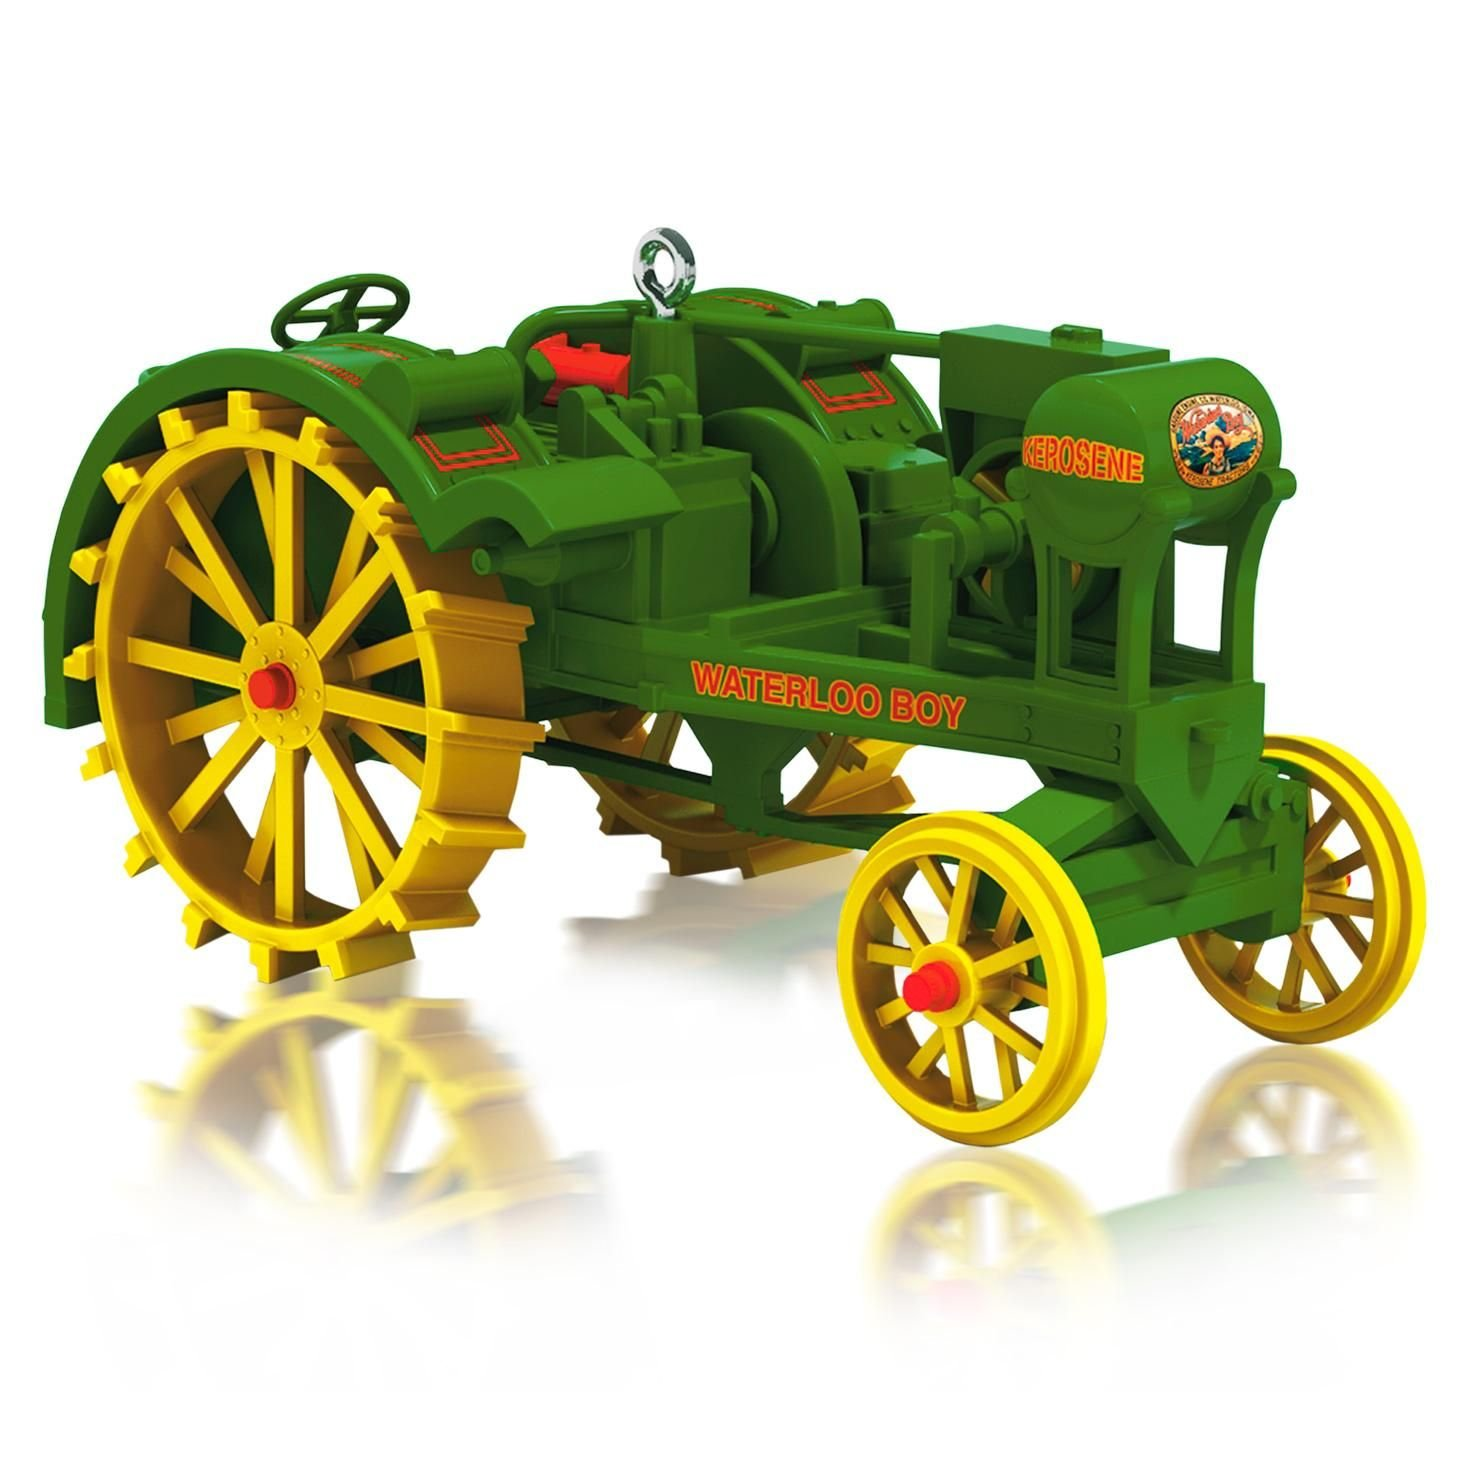 John Deere Kitchen Ideas: John Deere Tractor Gift Ideas